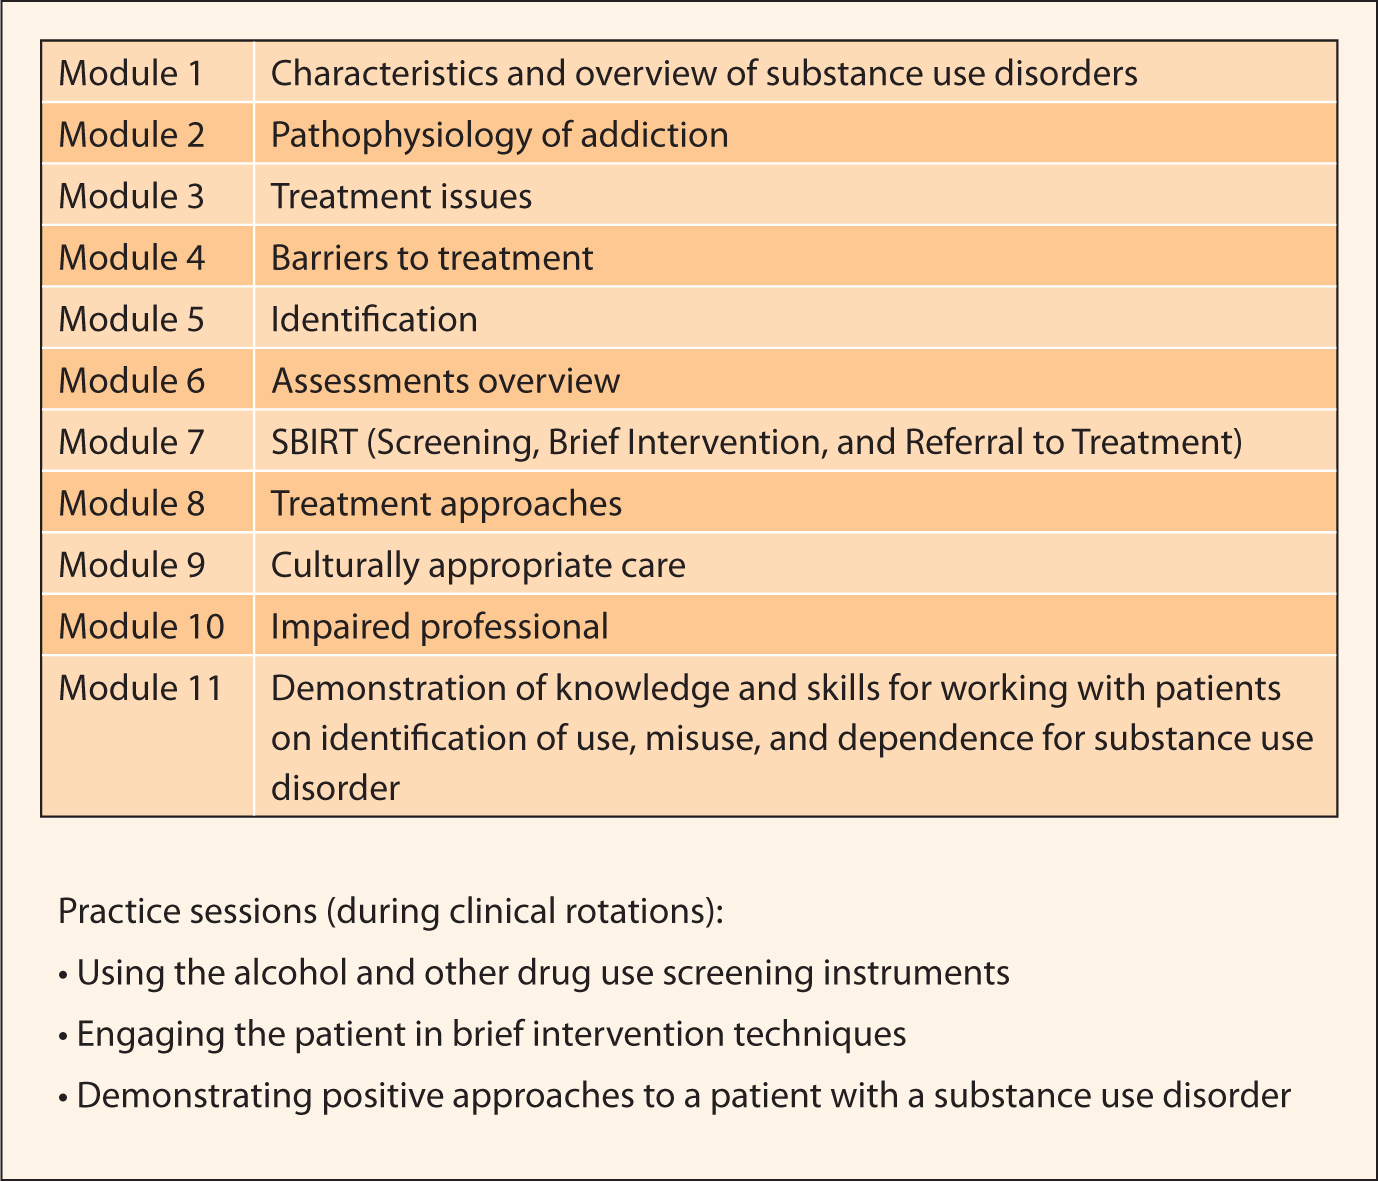 Screening, Brief Intervention, and Referral to Treatment curriculum. Adapted with permission from the ATN-SBIRT Curriculum table (Burns et al., 2012).